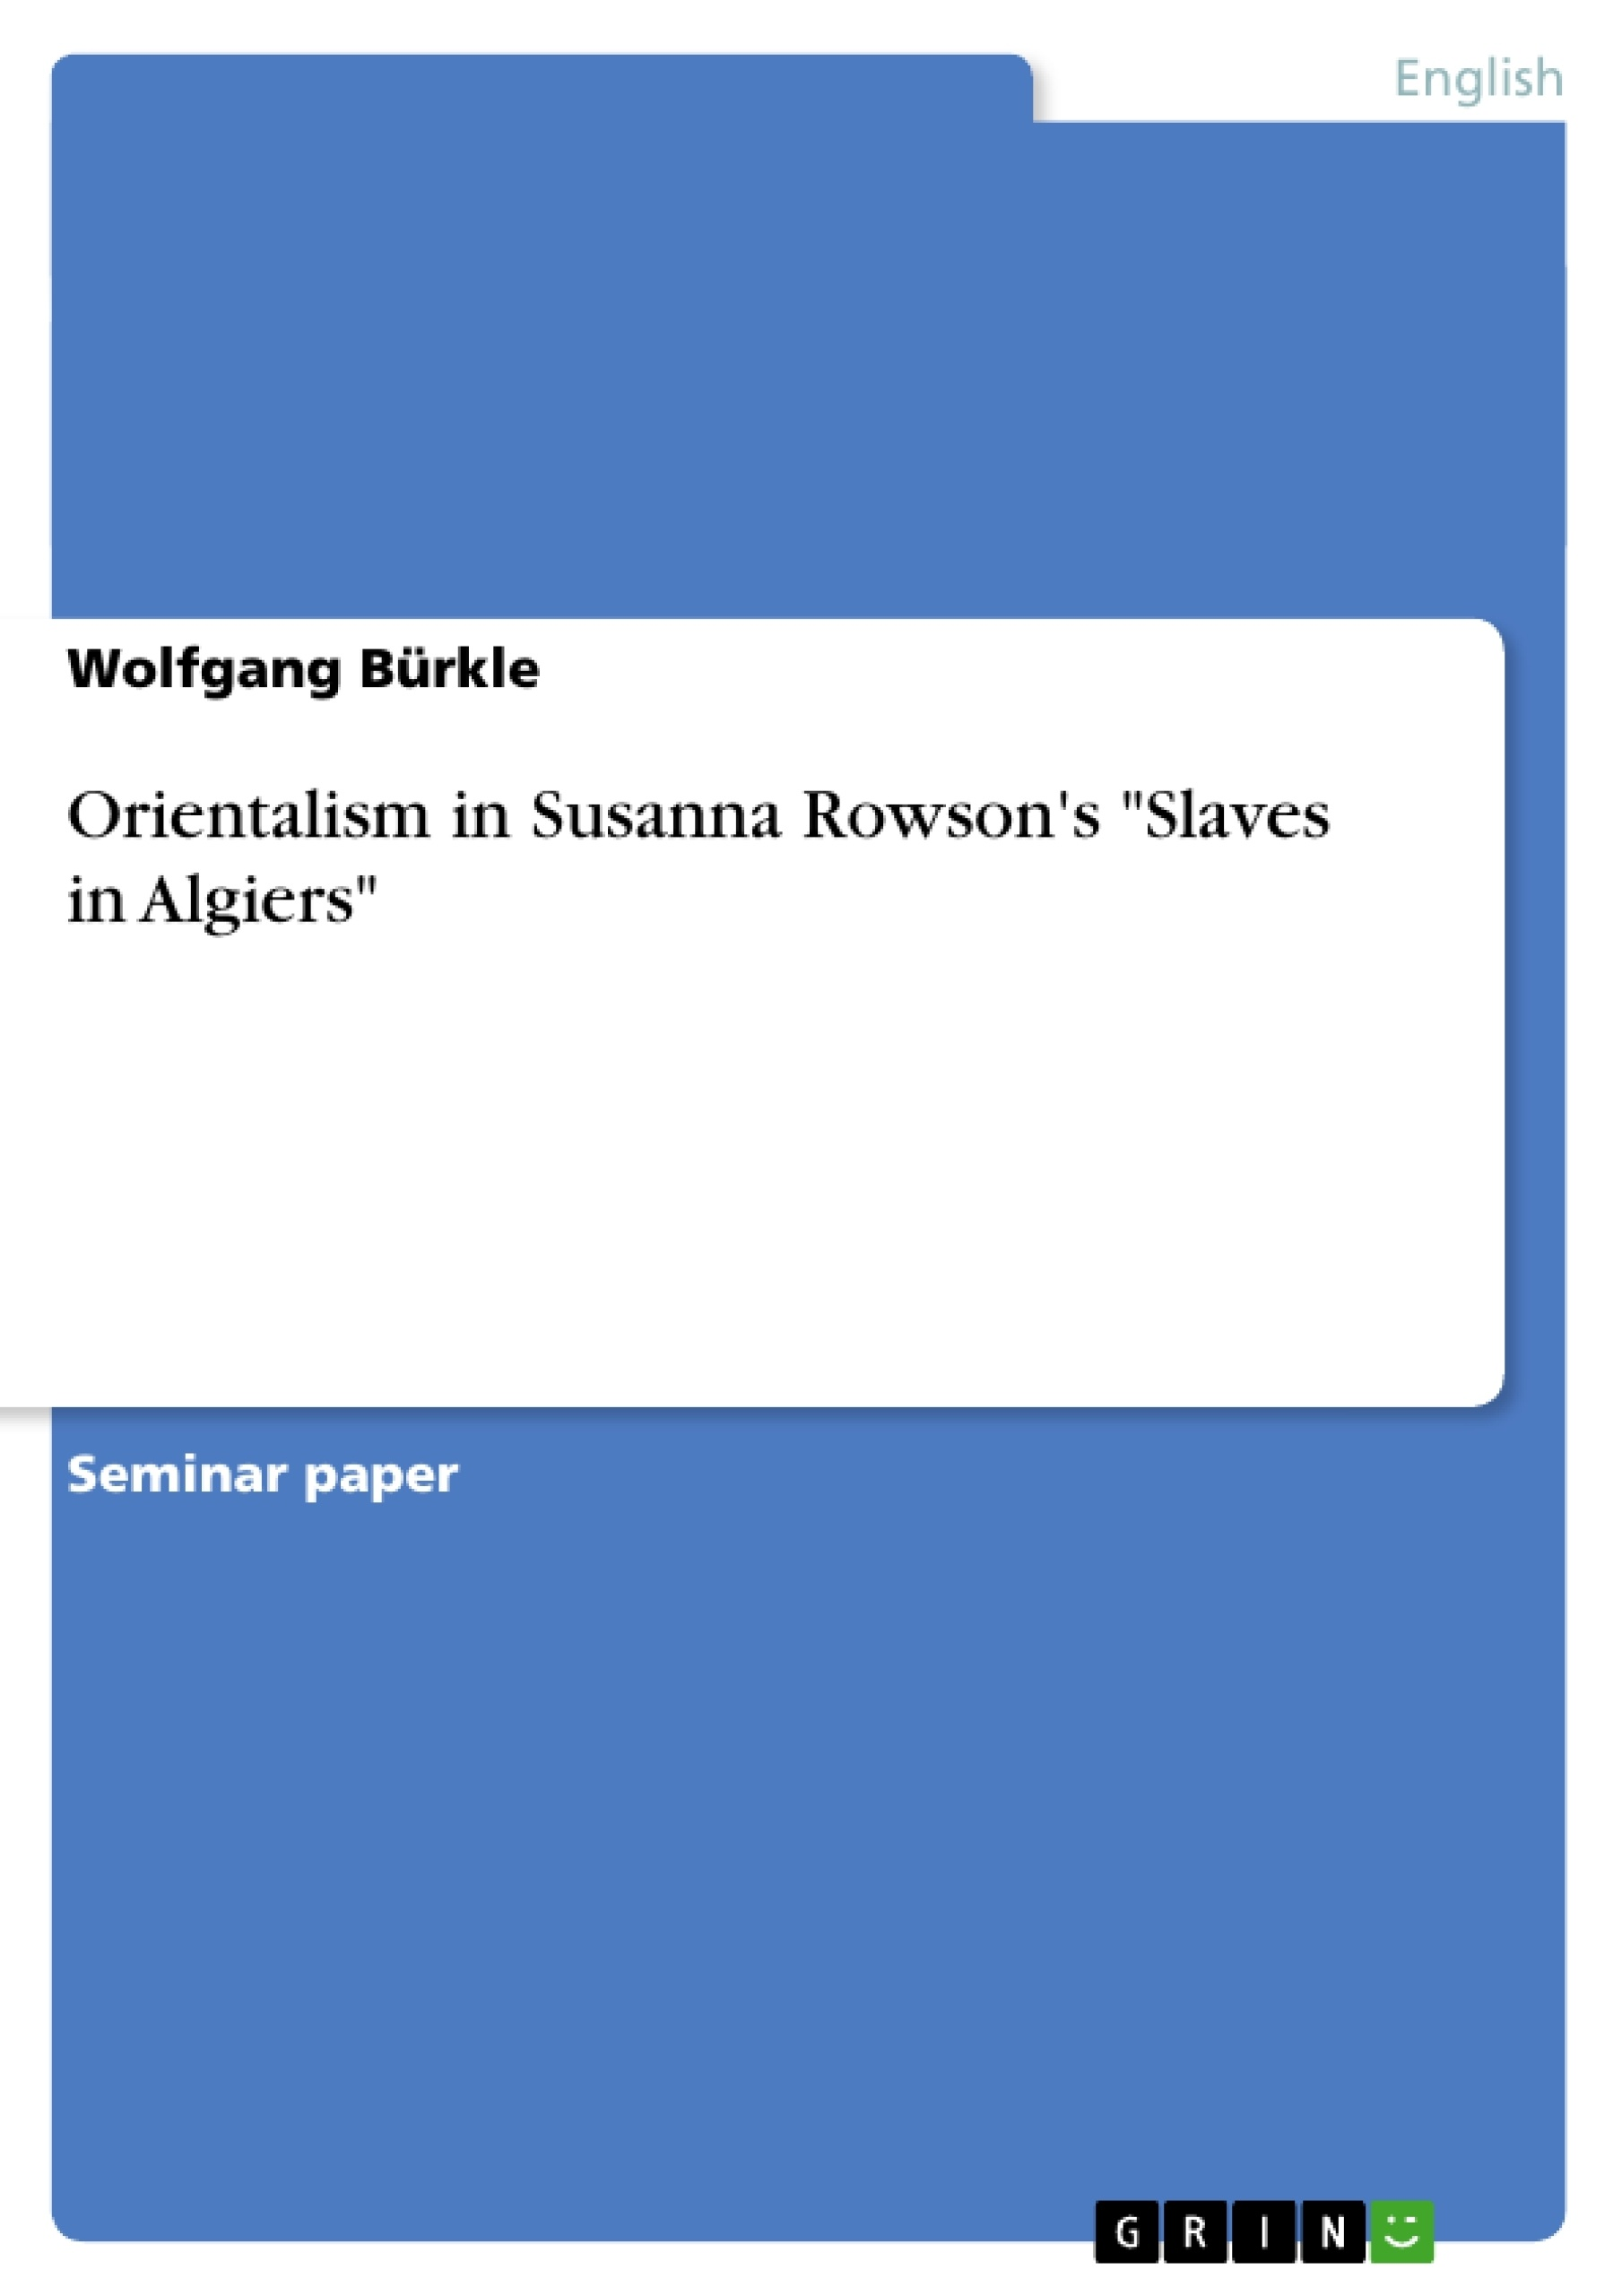 orientalism in susanna rowson s slaves in algiers publish your orientalism in susanna rowson s slaves in algiers publish your master s thesis bachelor s thesis essay or term paper